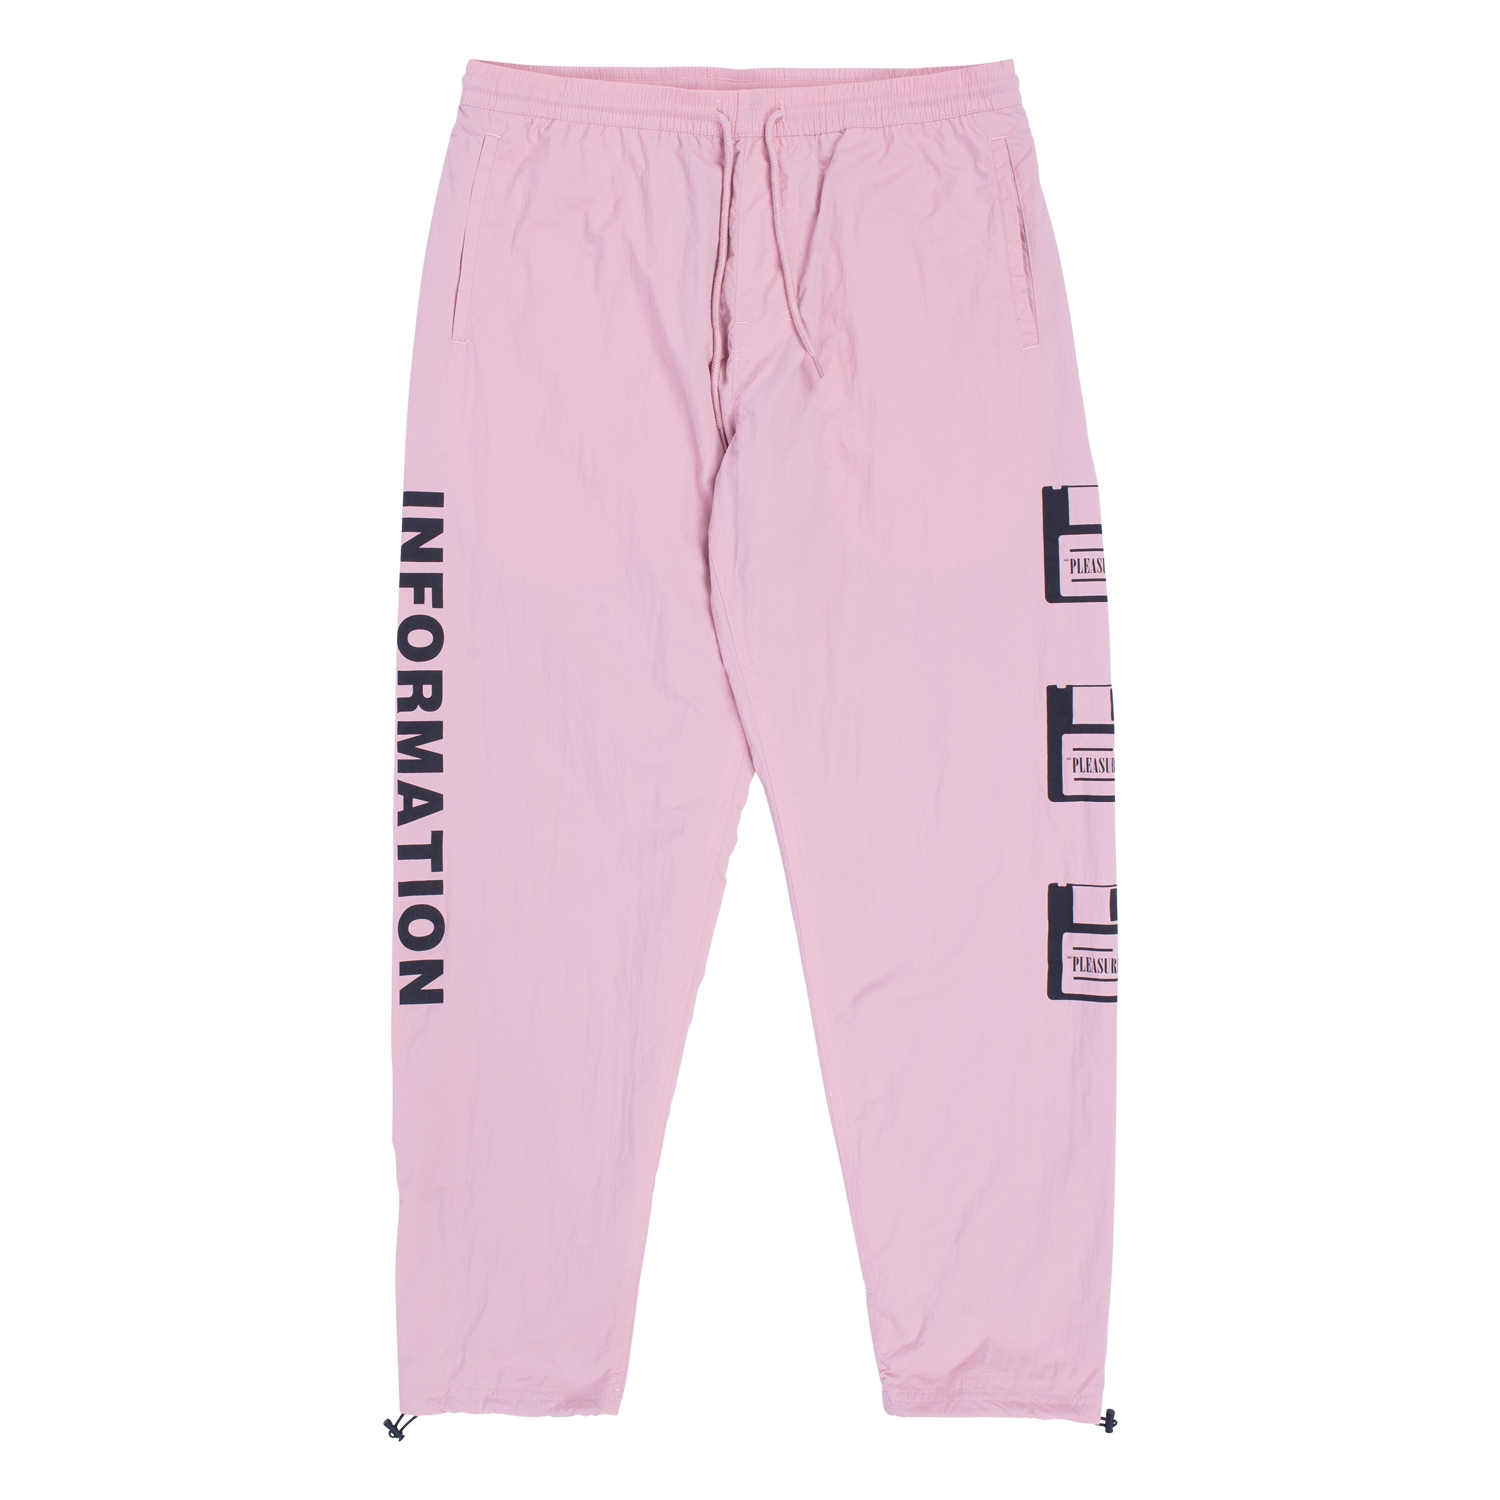 【PLEASURES/プレジャーズ】OVER YOU NYLON TRACK PANT トラックパンツ / DUSTY ROSE